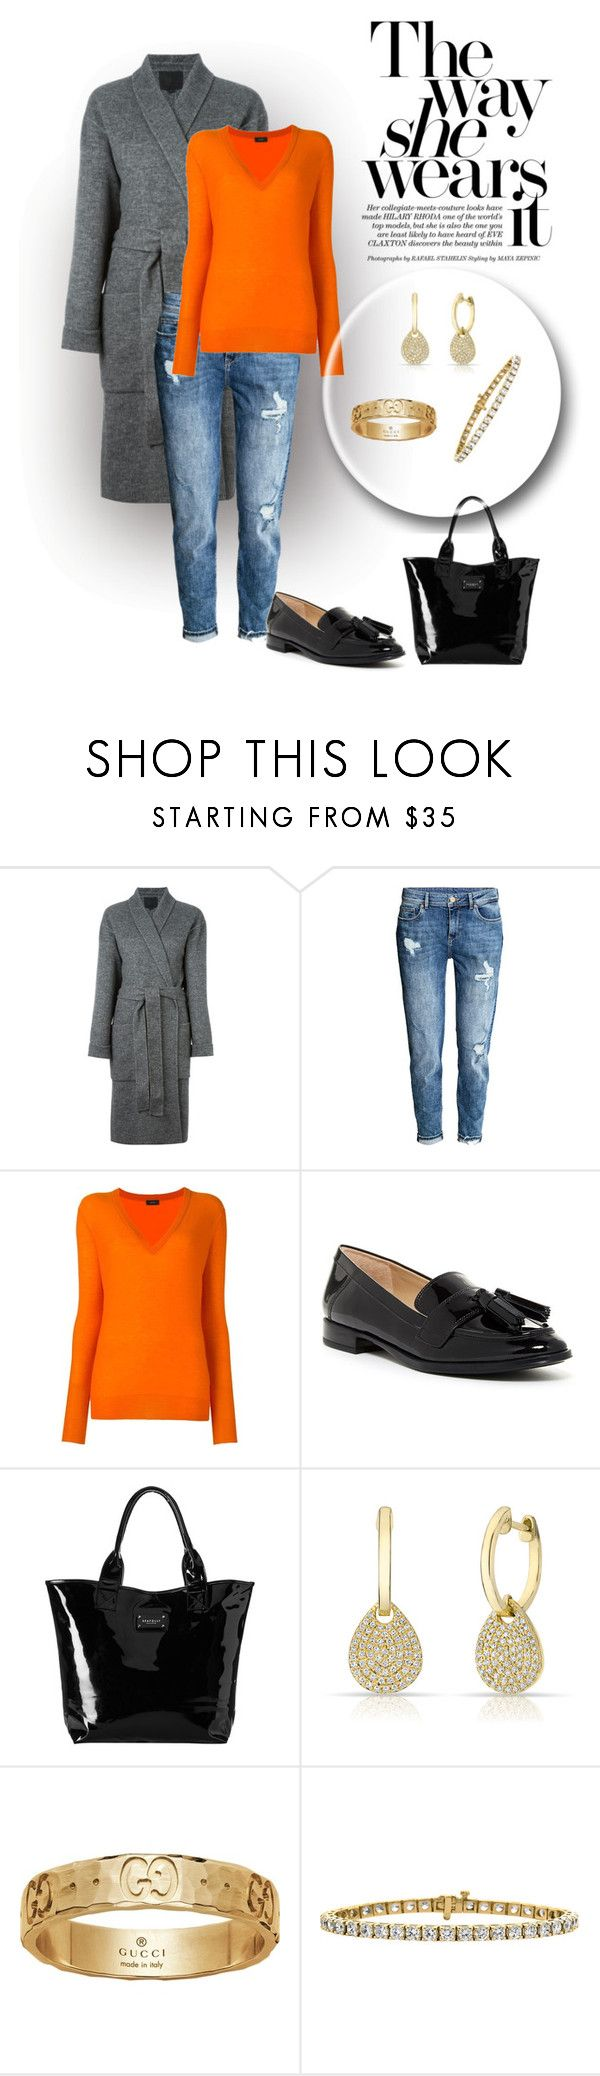 """Untitled #2156"" by swc0509 ❤ liked on Polyvore featuring Alexander Wang, H&M, Joseph, Via Spiga, Seafolly, Anne Sisteron and Gucci"